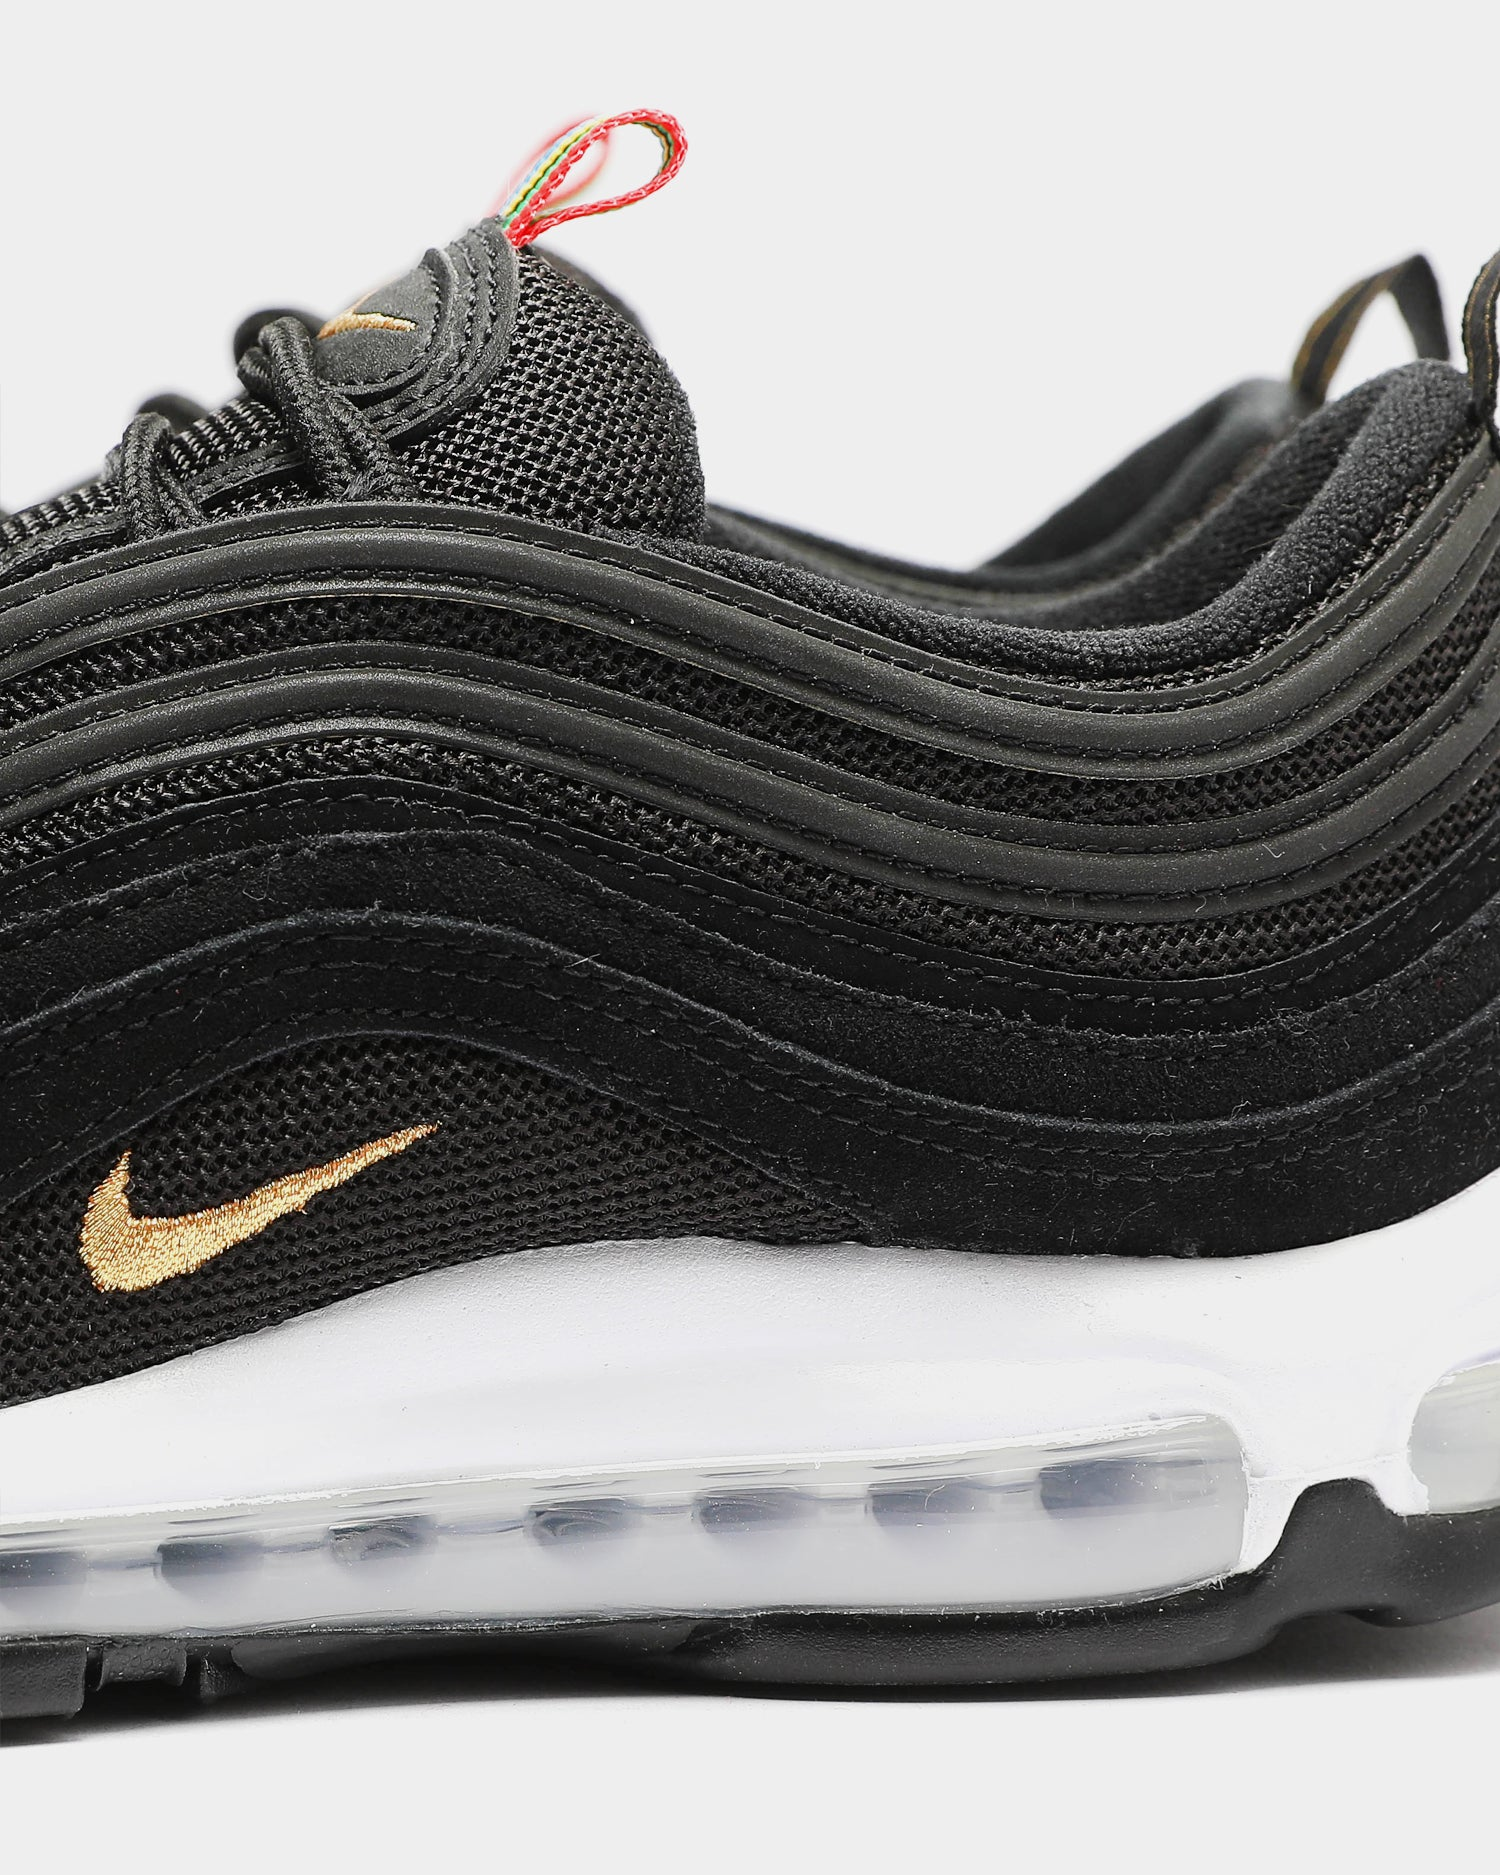 Nike Air Max 97 QS BlackGoldWhite